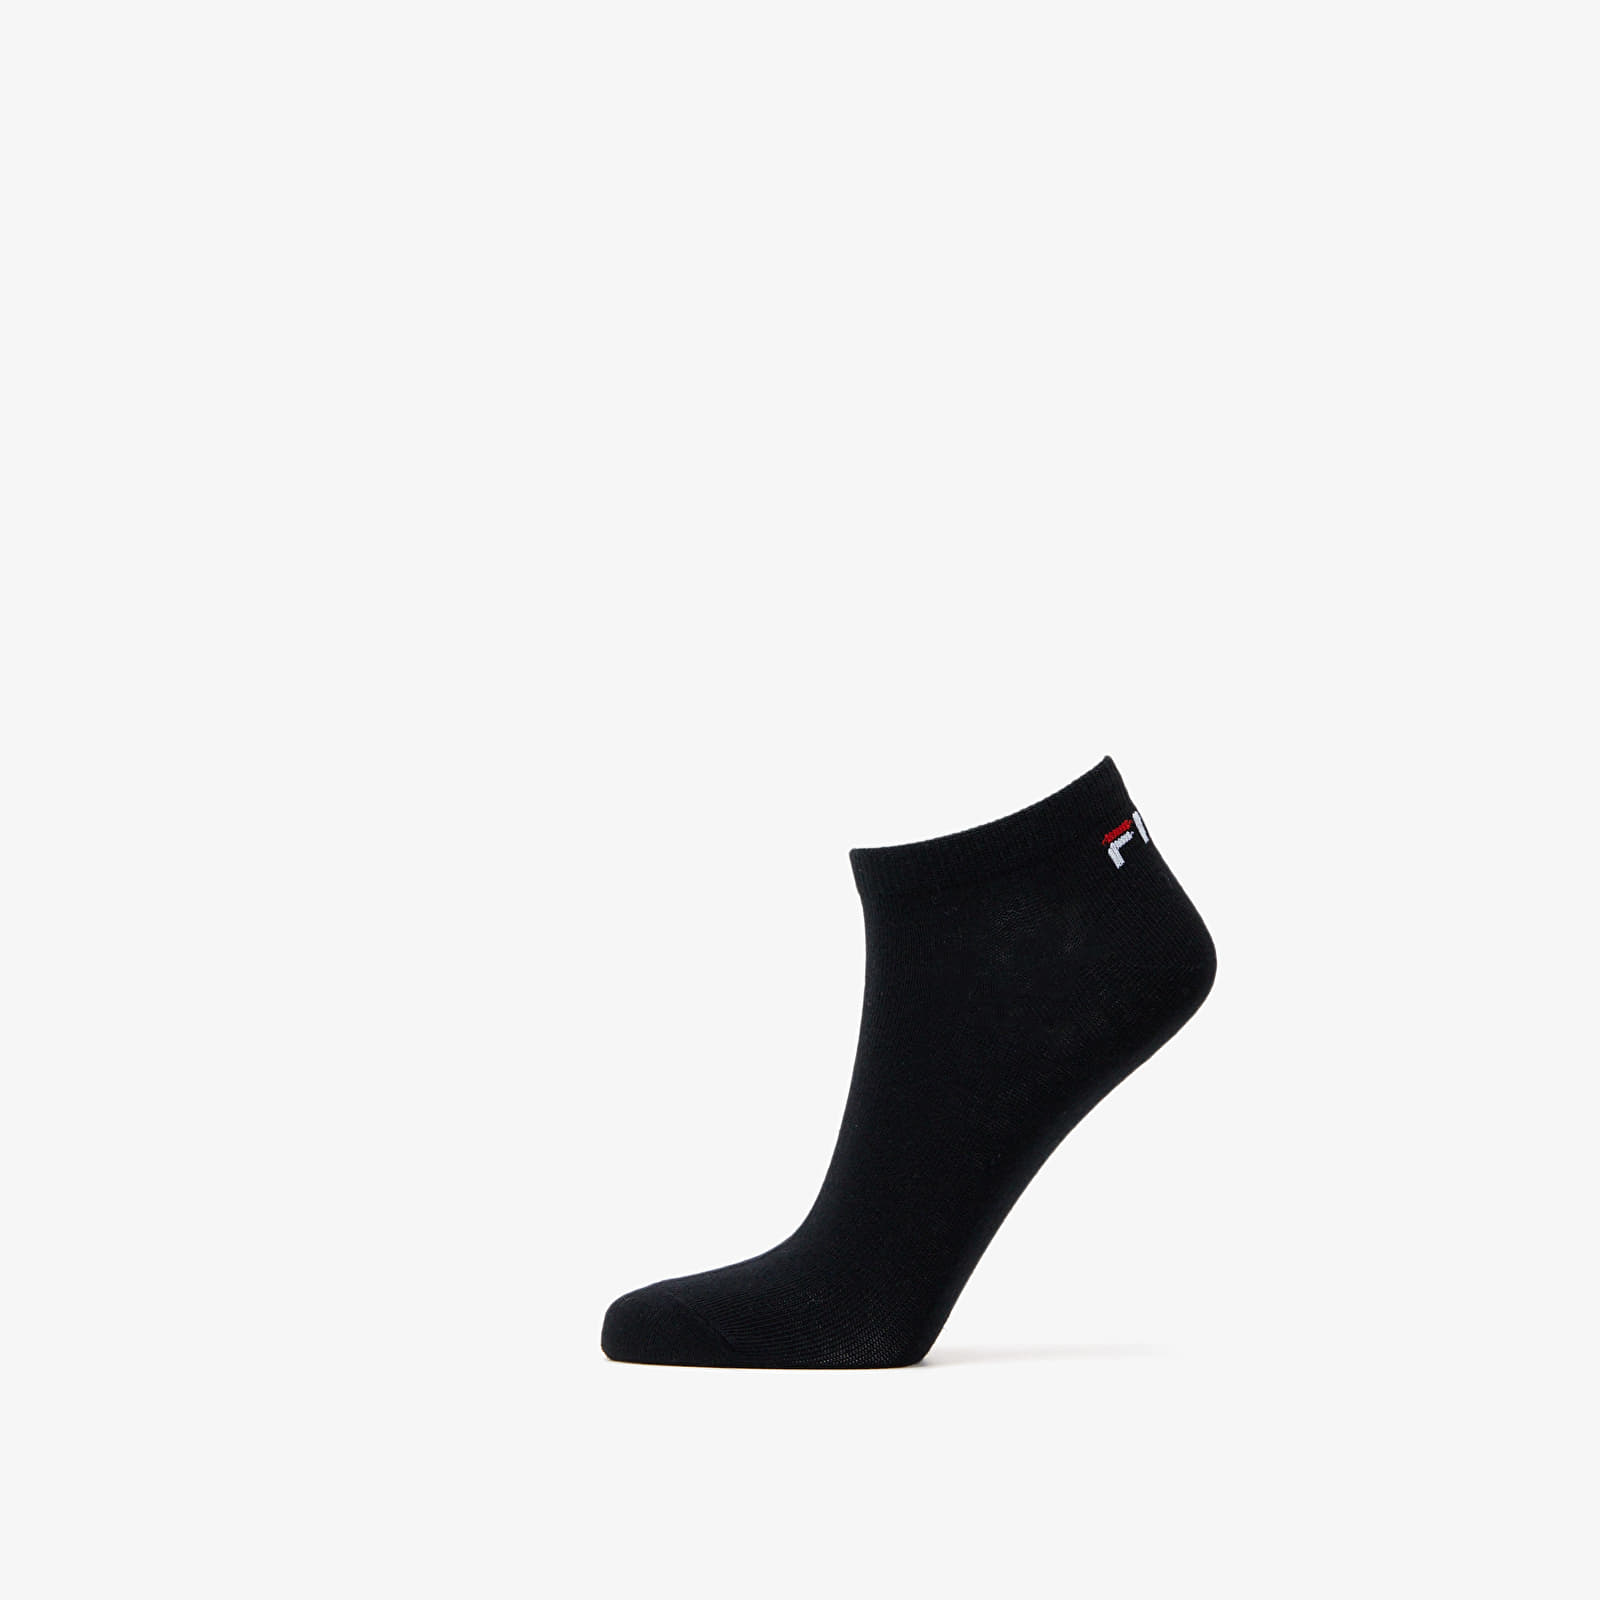 Low Socks FILA Calza Socks Black